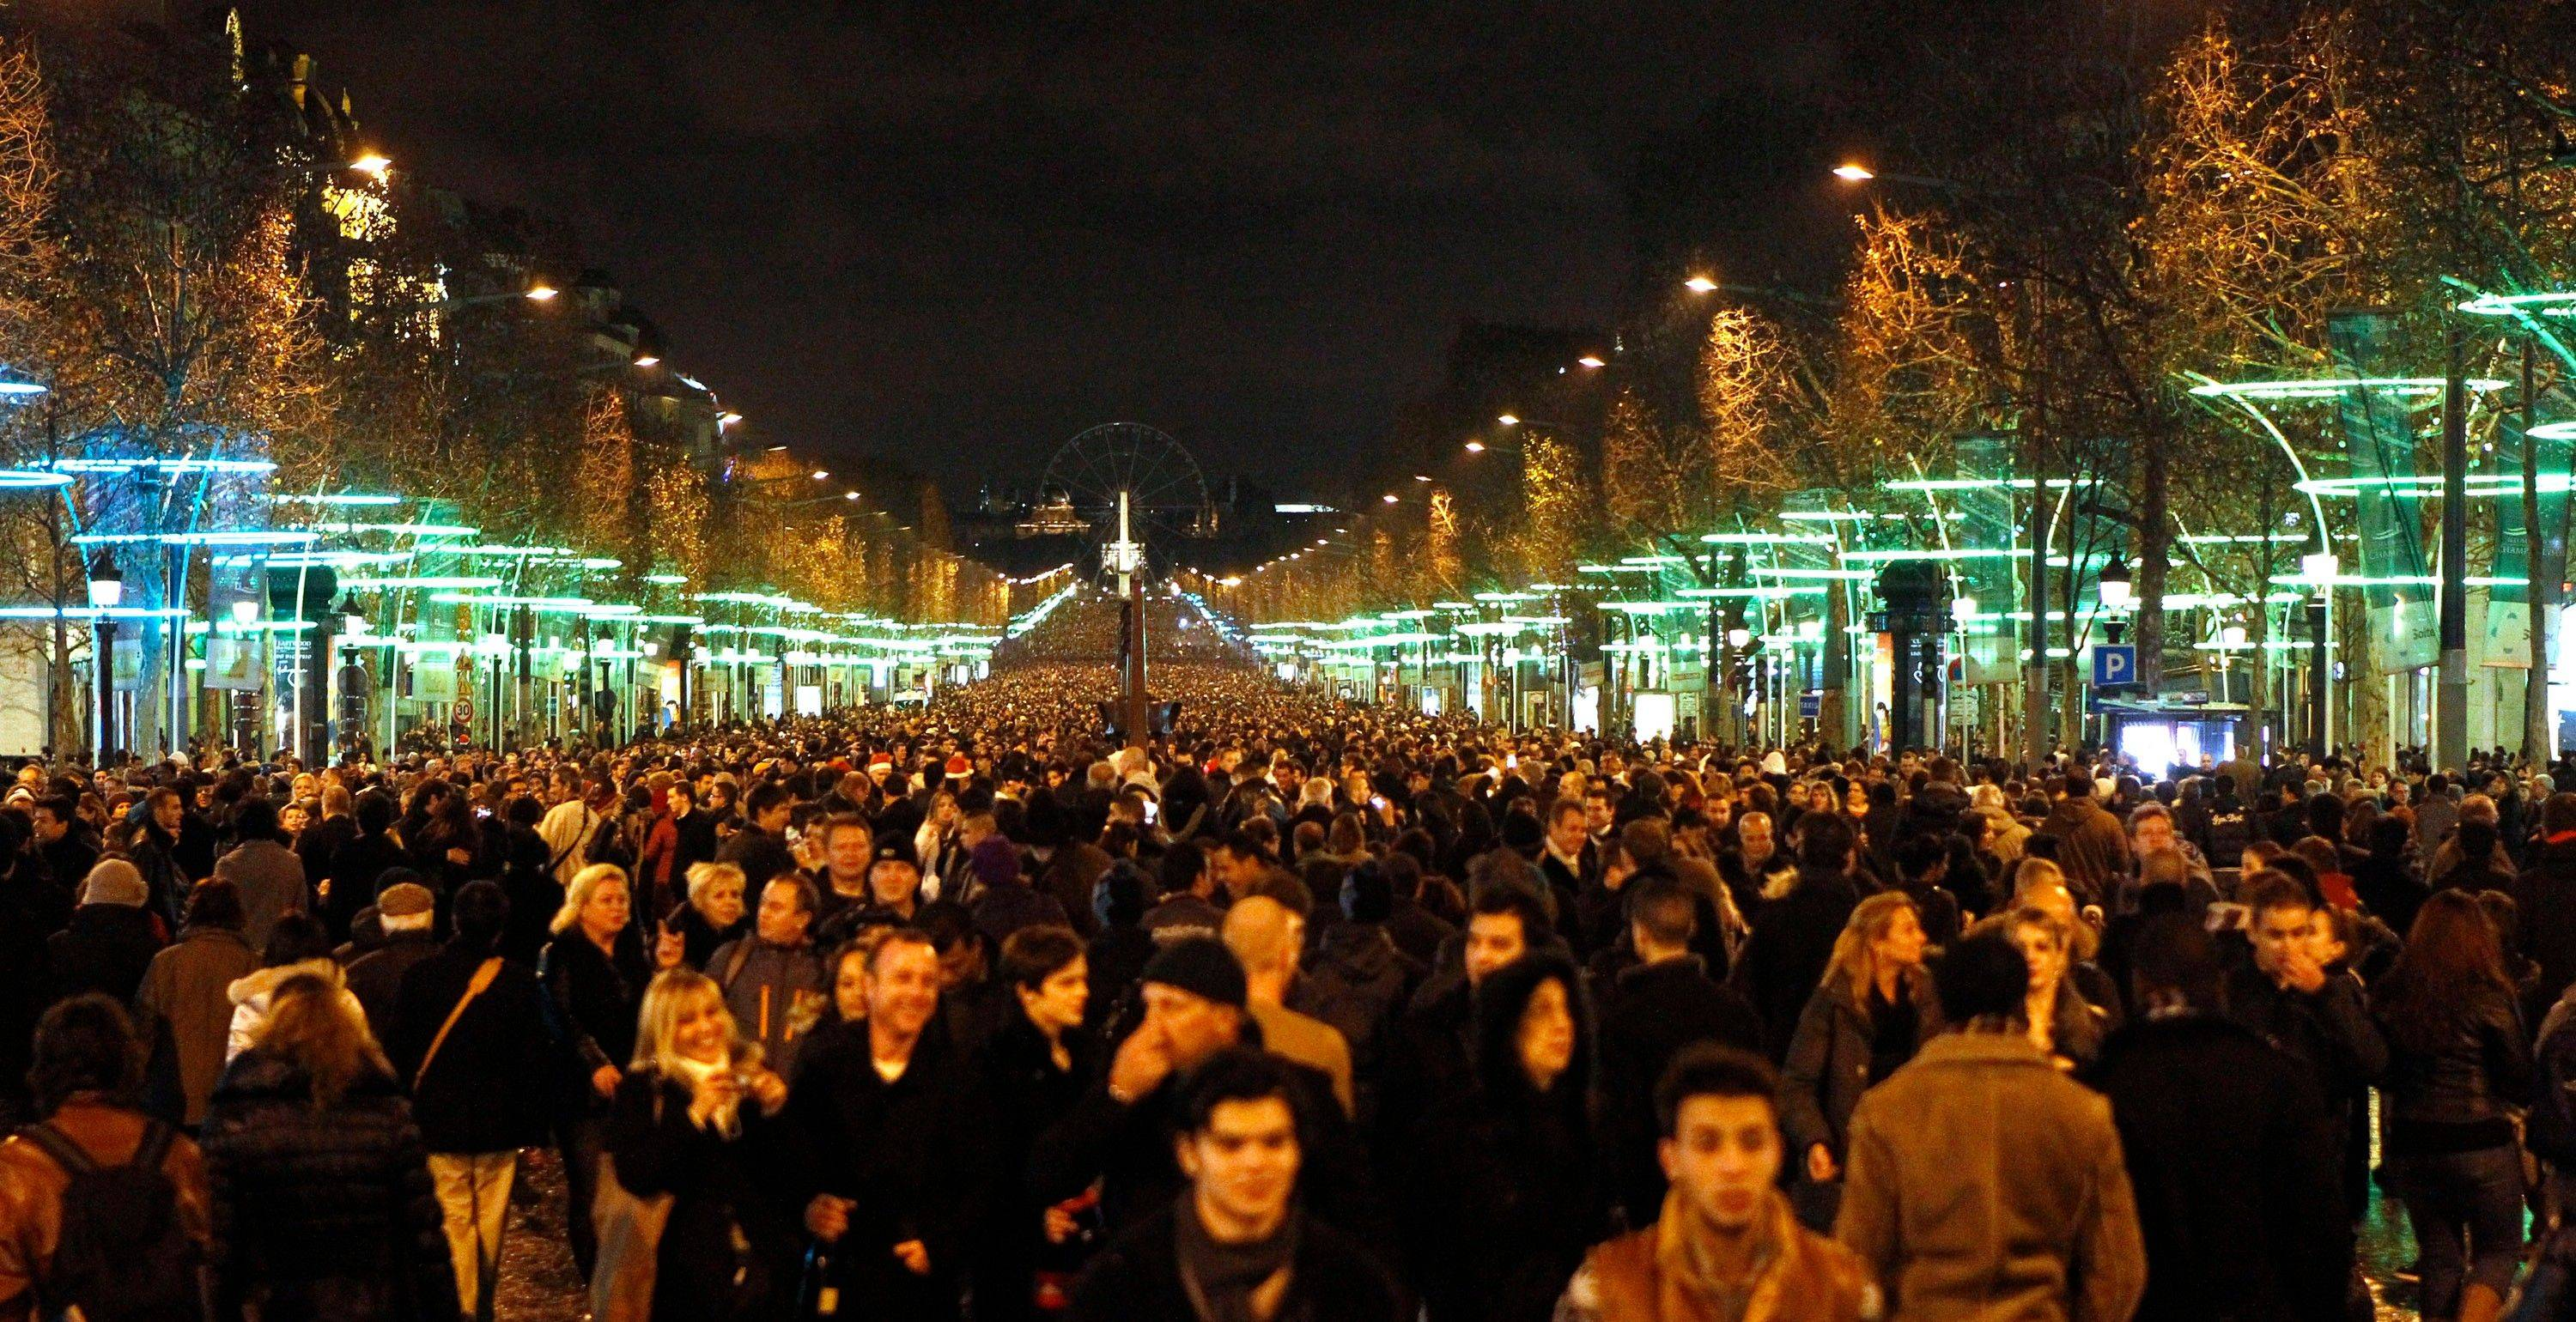 Revelers celebrate the New Year on the Champs Elysees avenue in Paris, Sunday Jan. 1, 2012.